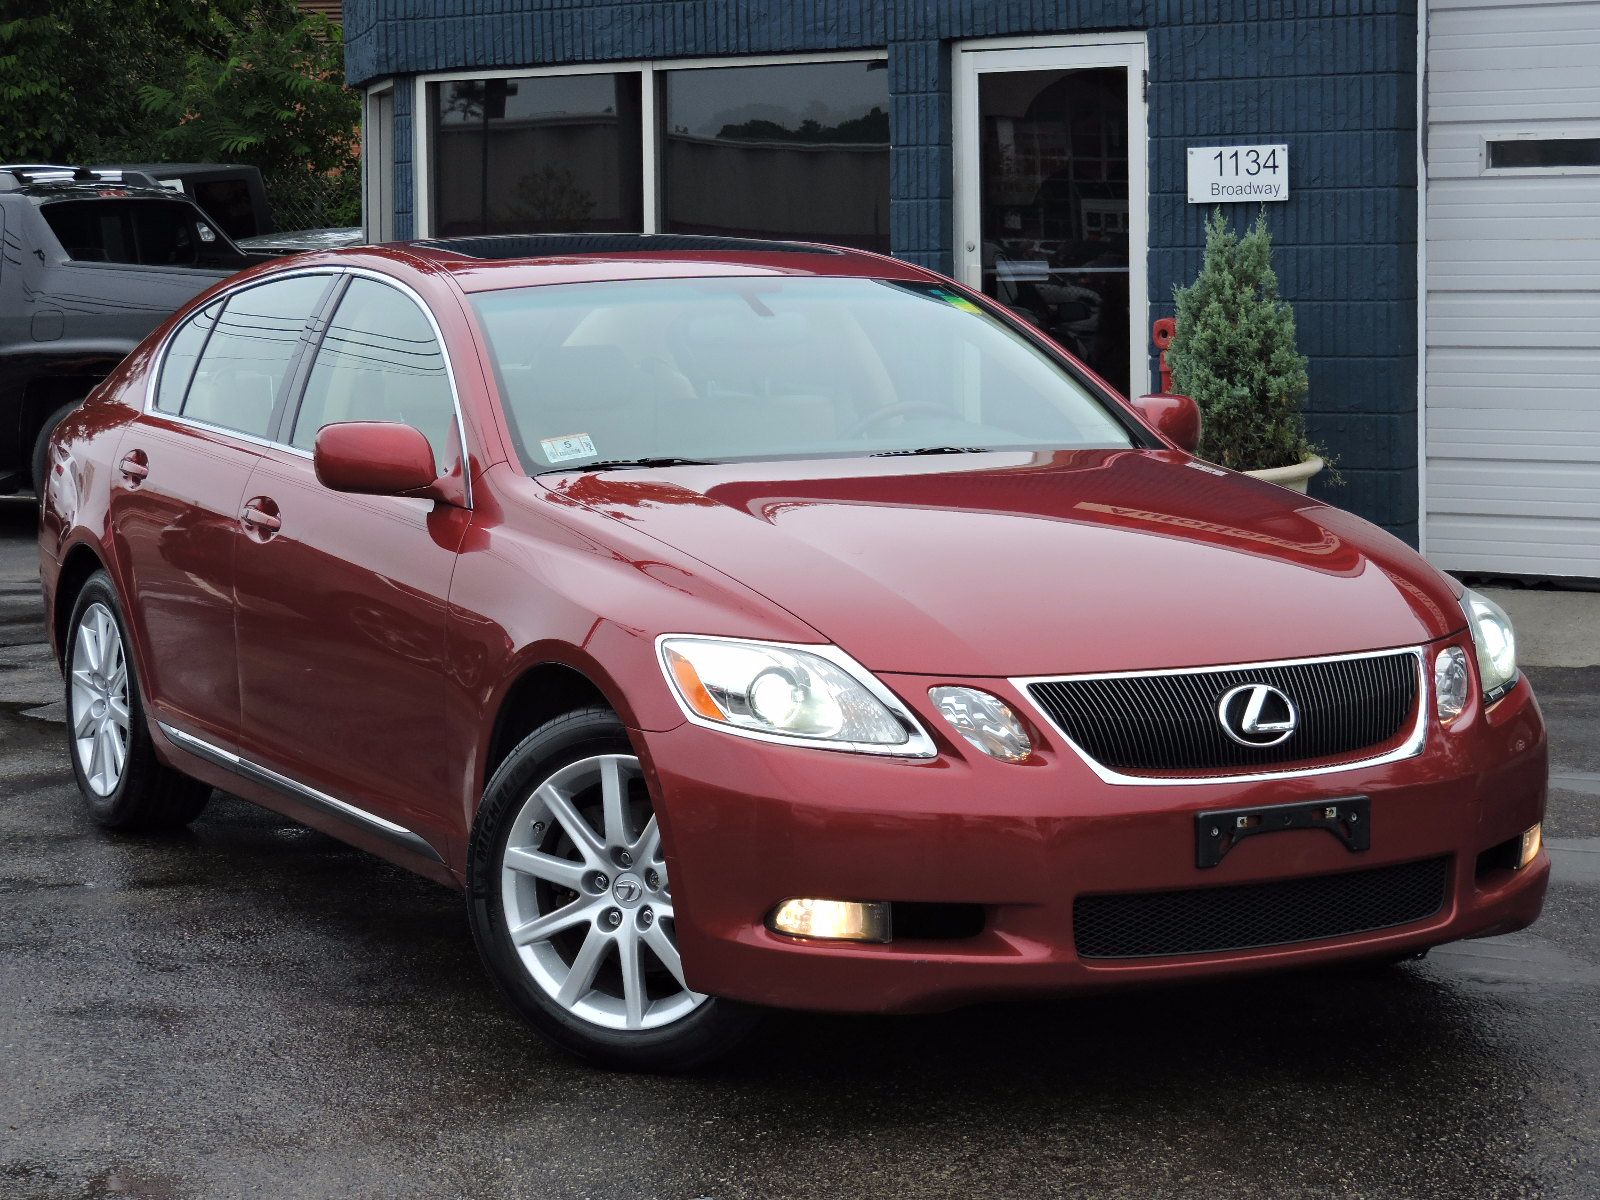 used 2006 lexus gs 300 special edition at auto house usa saugus. Black Bedroom Furniture Sets. Home Design Ideas